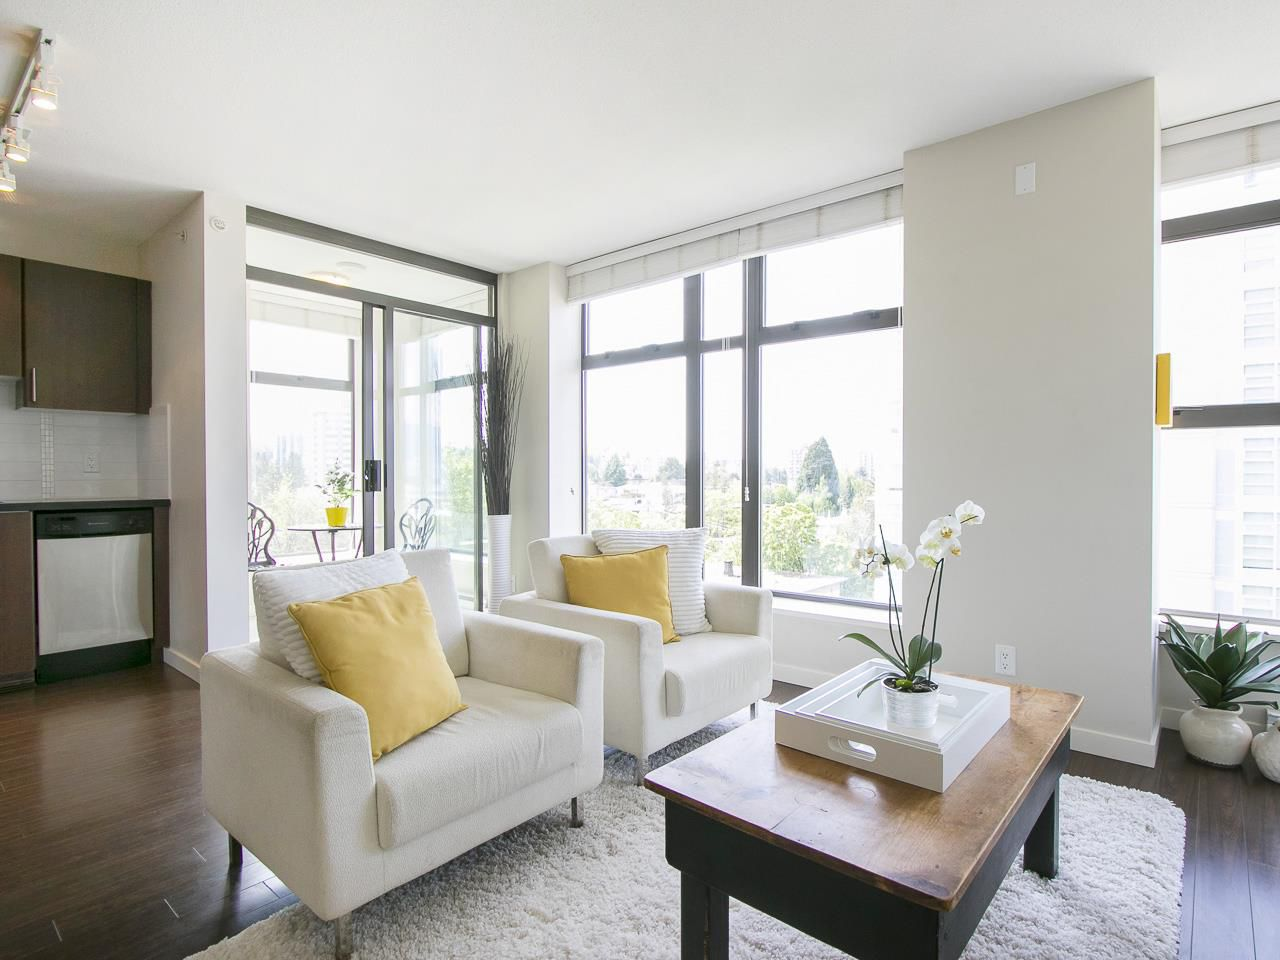 """Main Photo: 905 1068 W BROADWAY in Vancouver: Fairview VW Condo for sale in """"The Zone"""" (Vancouver West)  : MLS®# R2060723"""